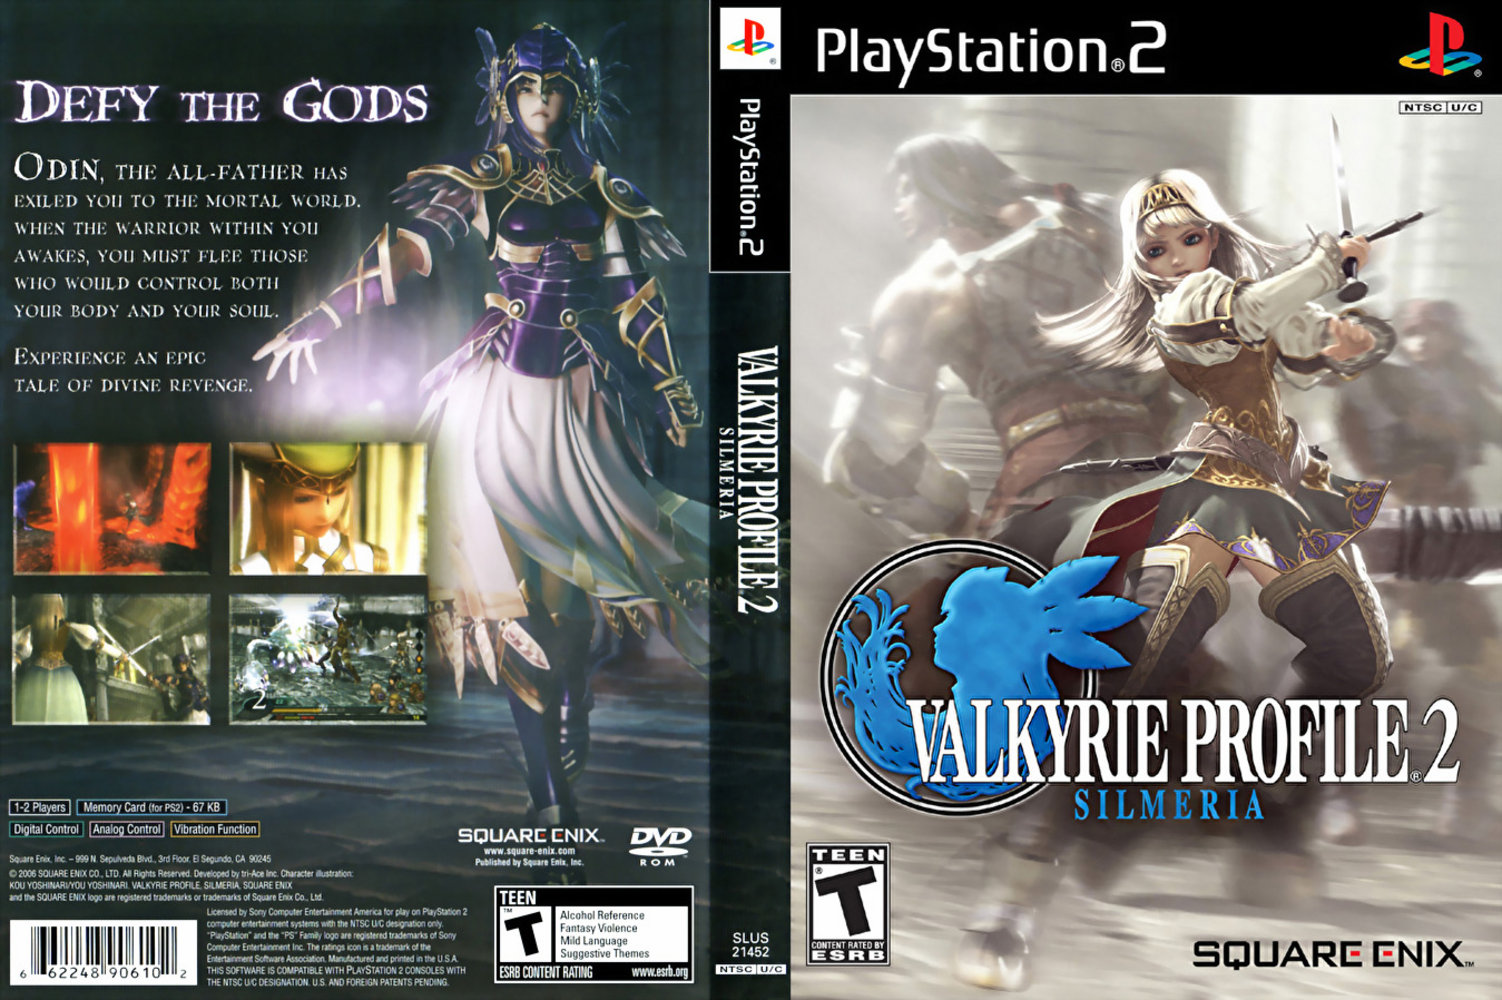 Download free software pcsx2 valkyrie profile 2 patch.